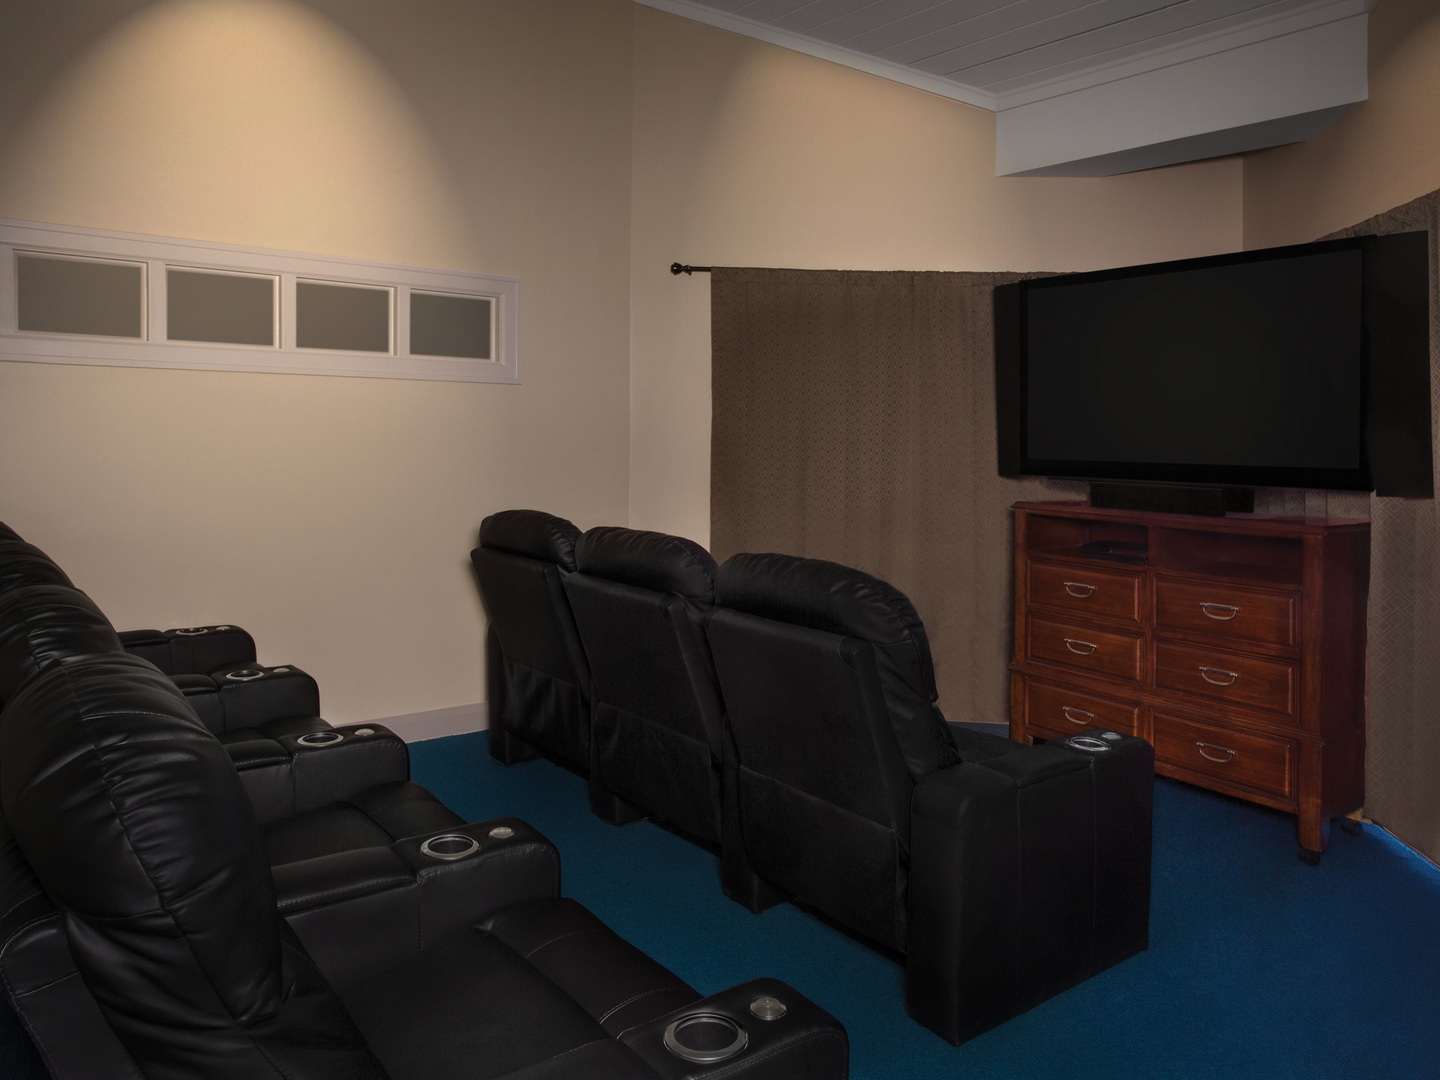 Marriott's Legends Edge at Bay Point Theater Room. Marriott's Legends Edge at Bay Point is located in Panama City, Florida United States.